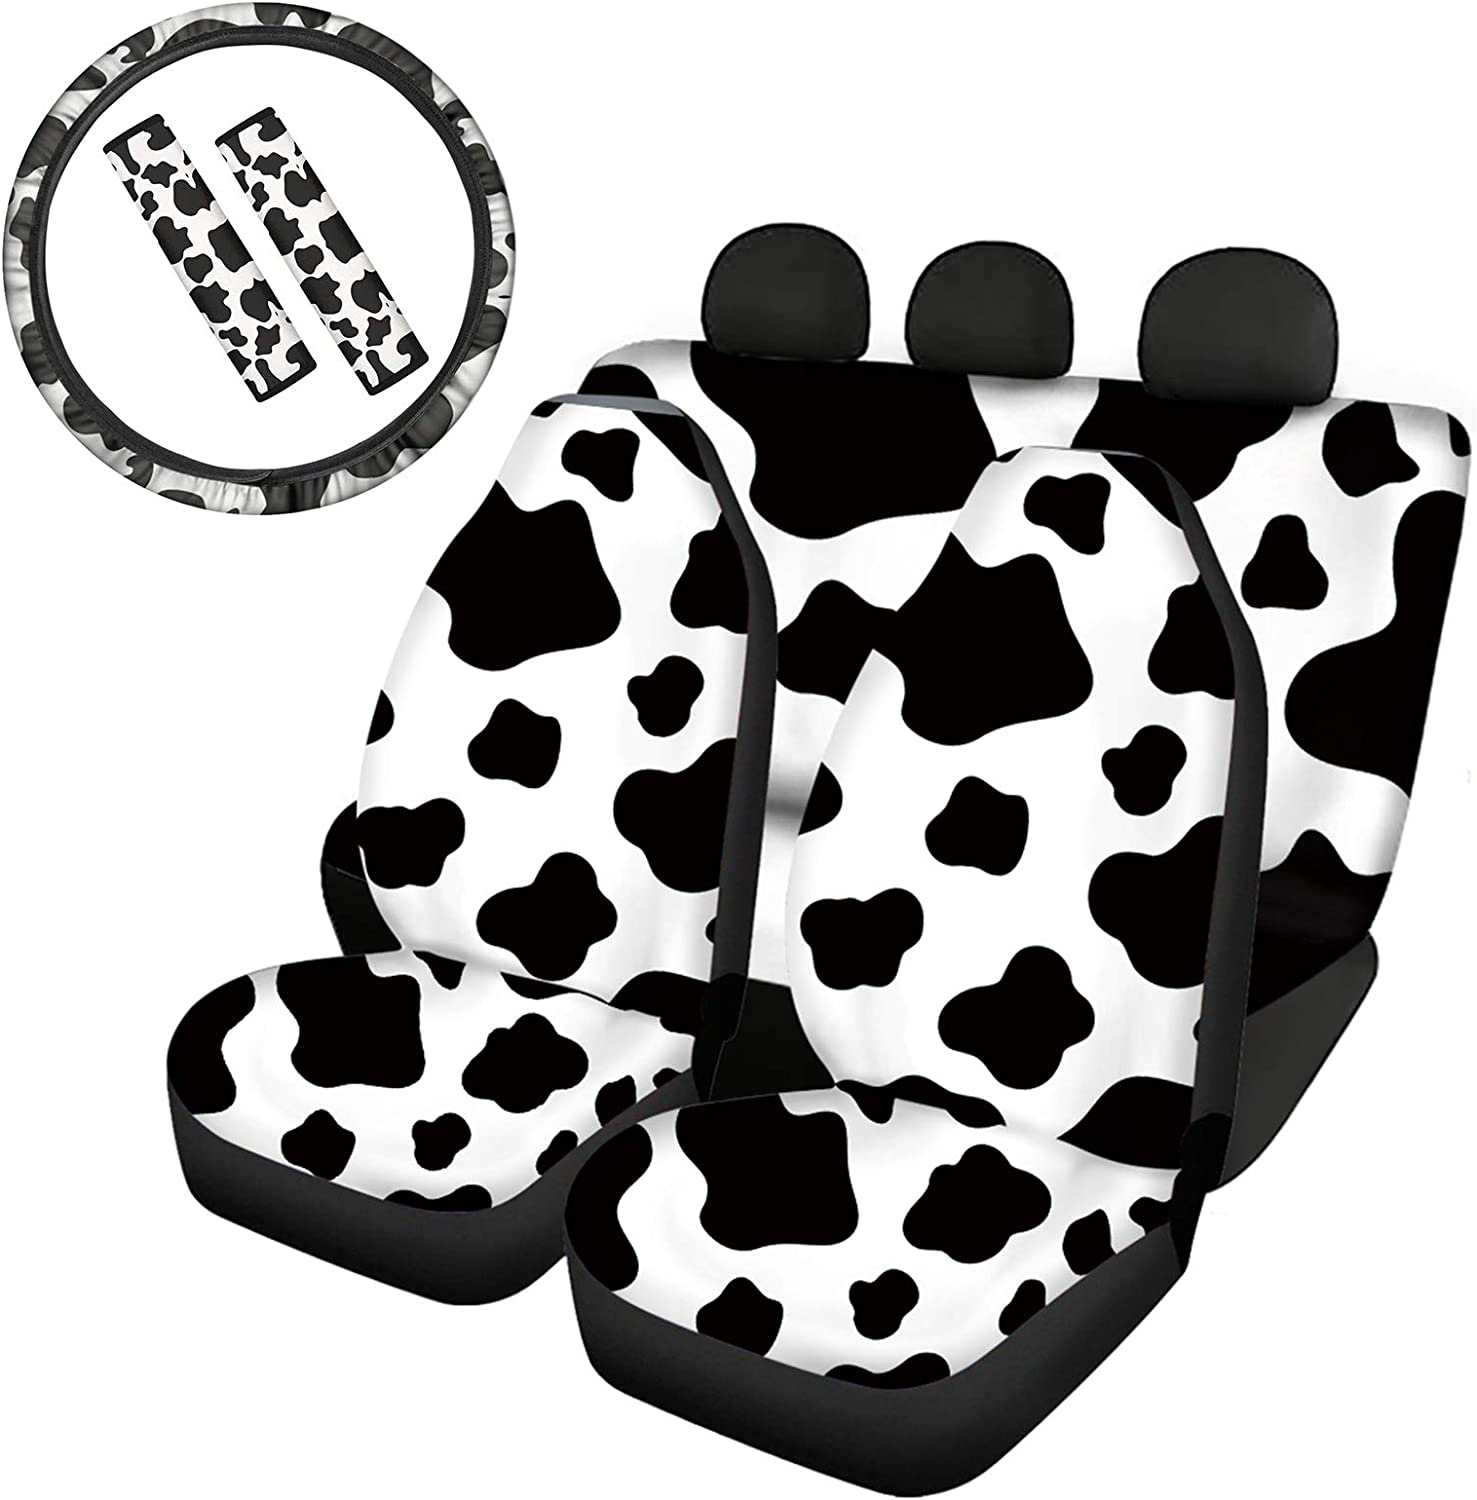 JOAIFO 7Pcs Black White Cow Print Universal fit Car Seat Cover for Front and Rear Seat with Steering Wheel Cover and Seat Belt Set, Car Interior Decor Accessories Cute Animal Design